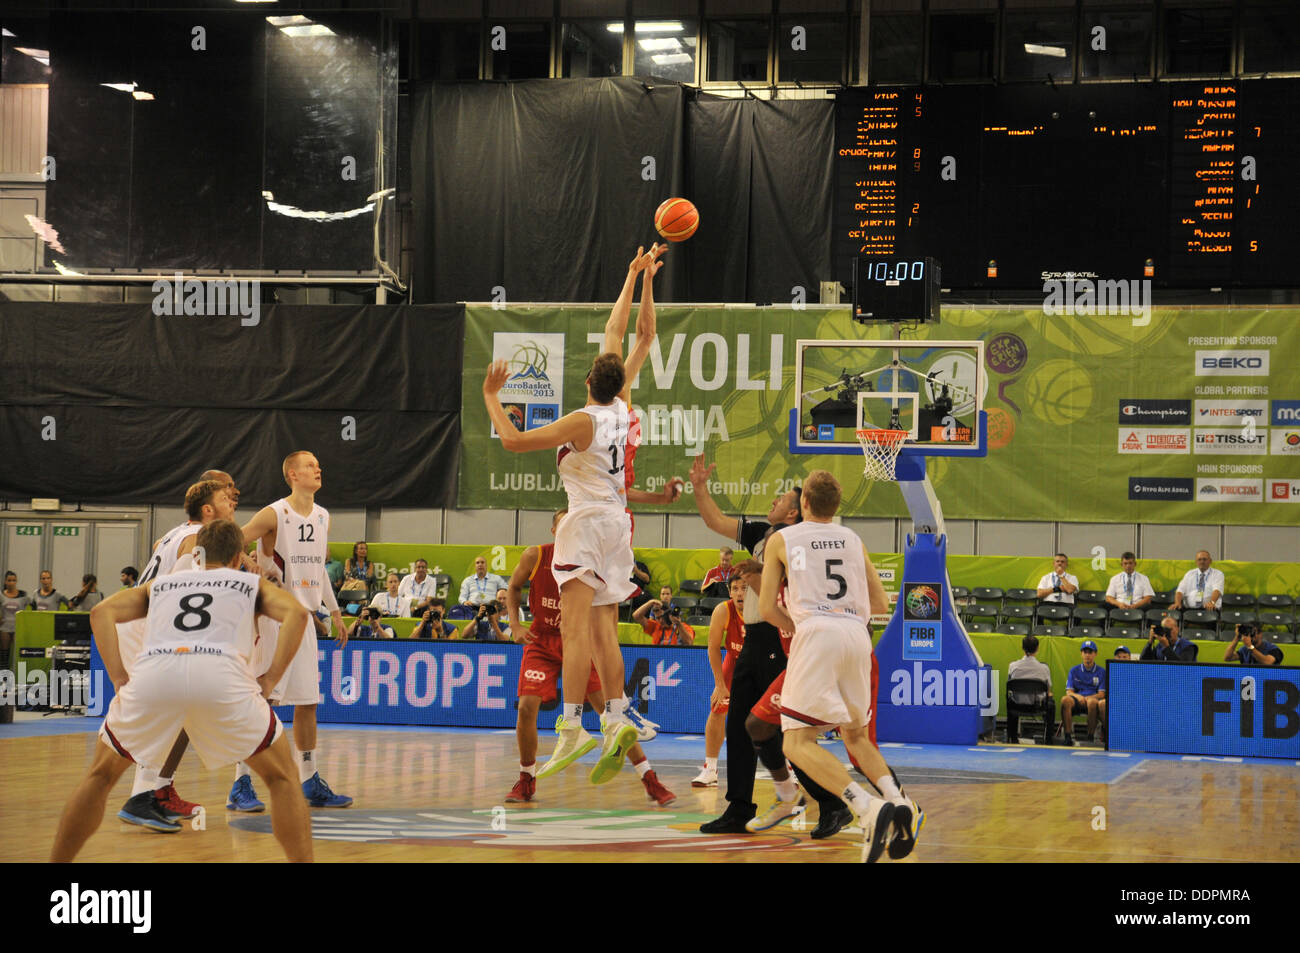 Jump for first ball possession. Beginning of the game. - Stock Image